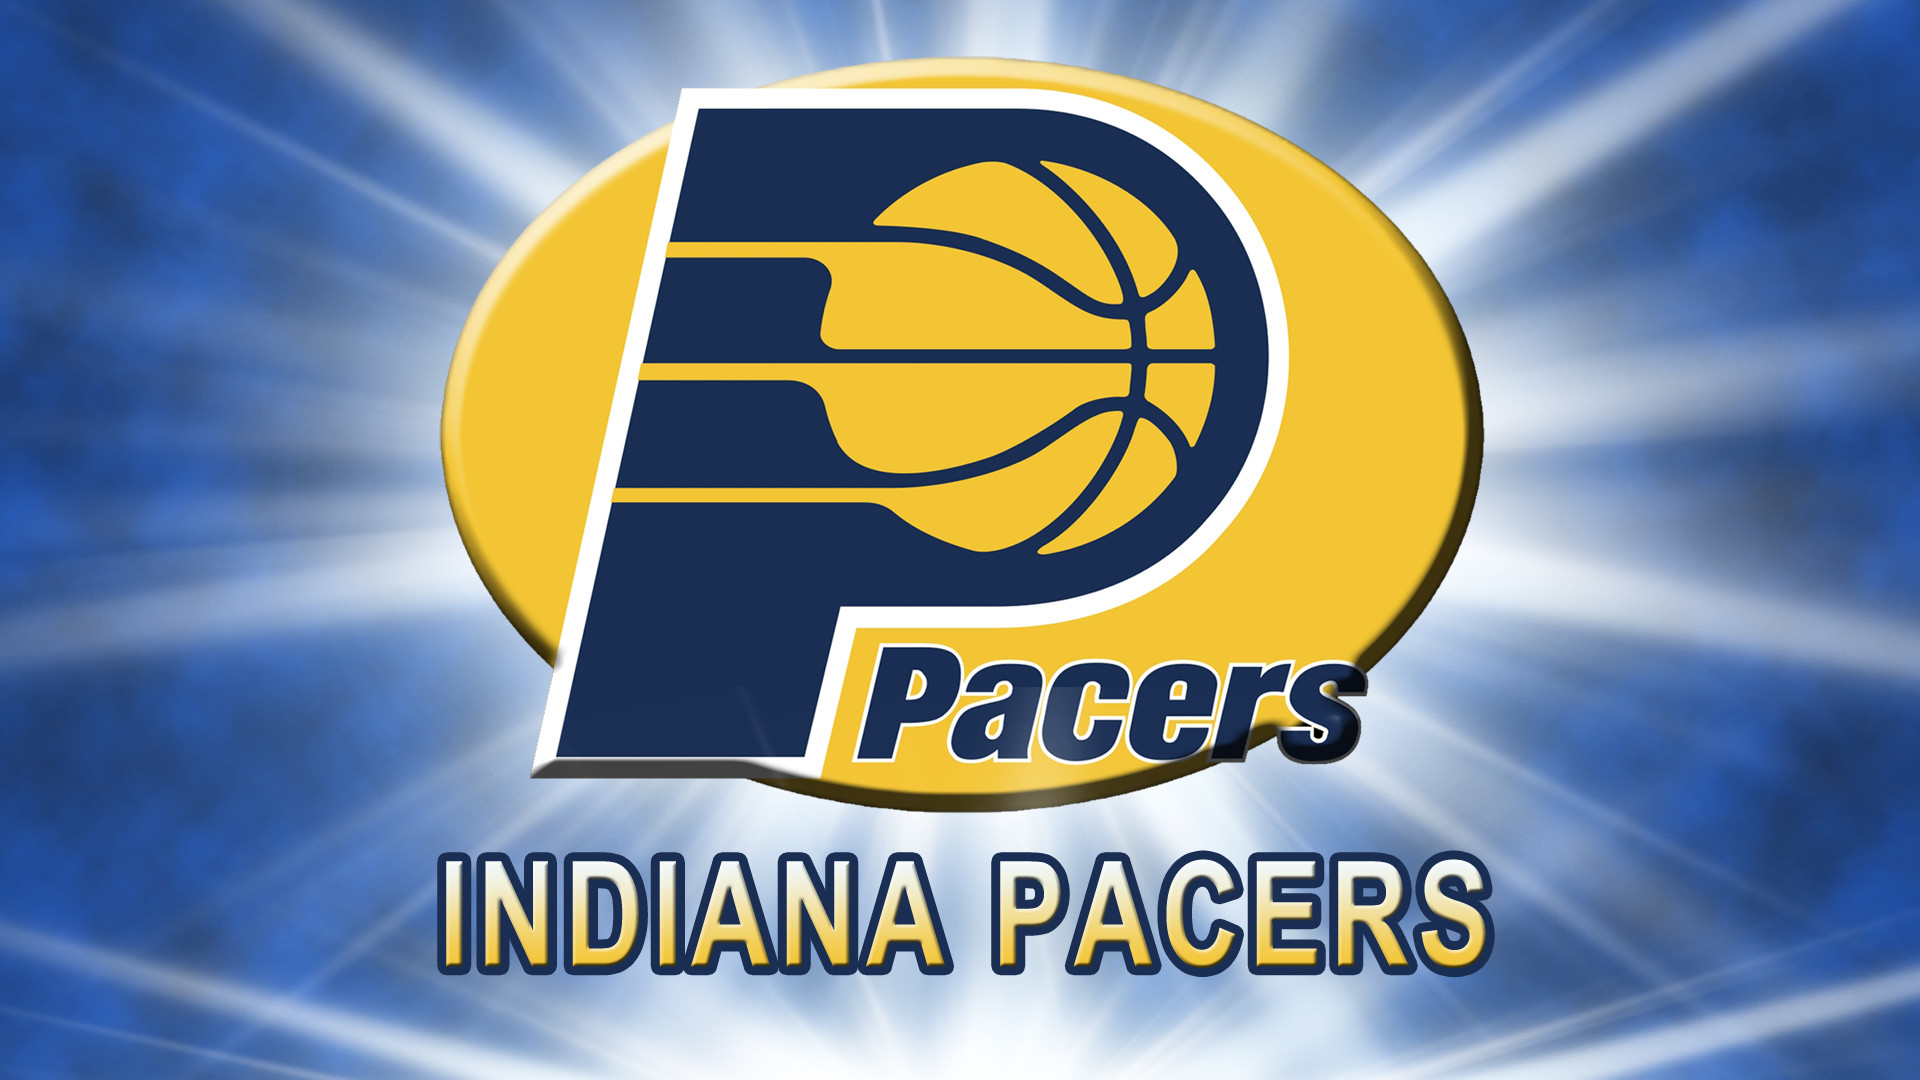 1920x1080 INDIANA PACERS nba basketball (16) wallpaper |  | 227043 |  WallpaperUP